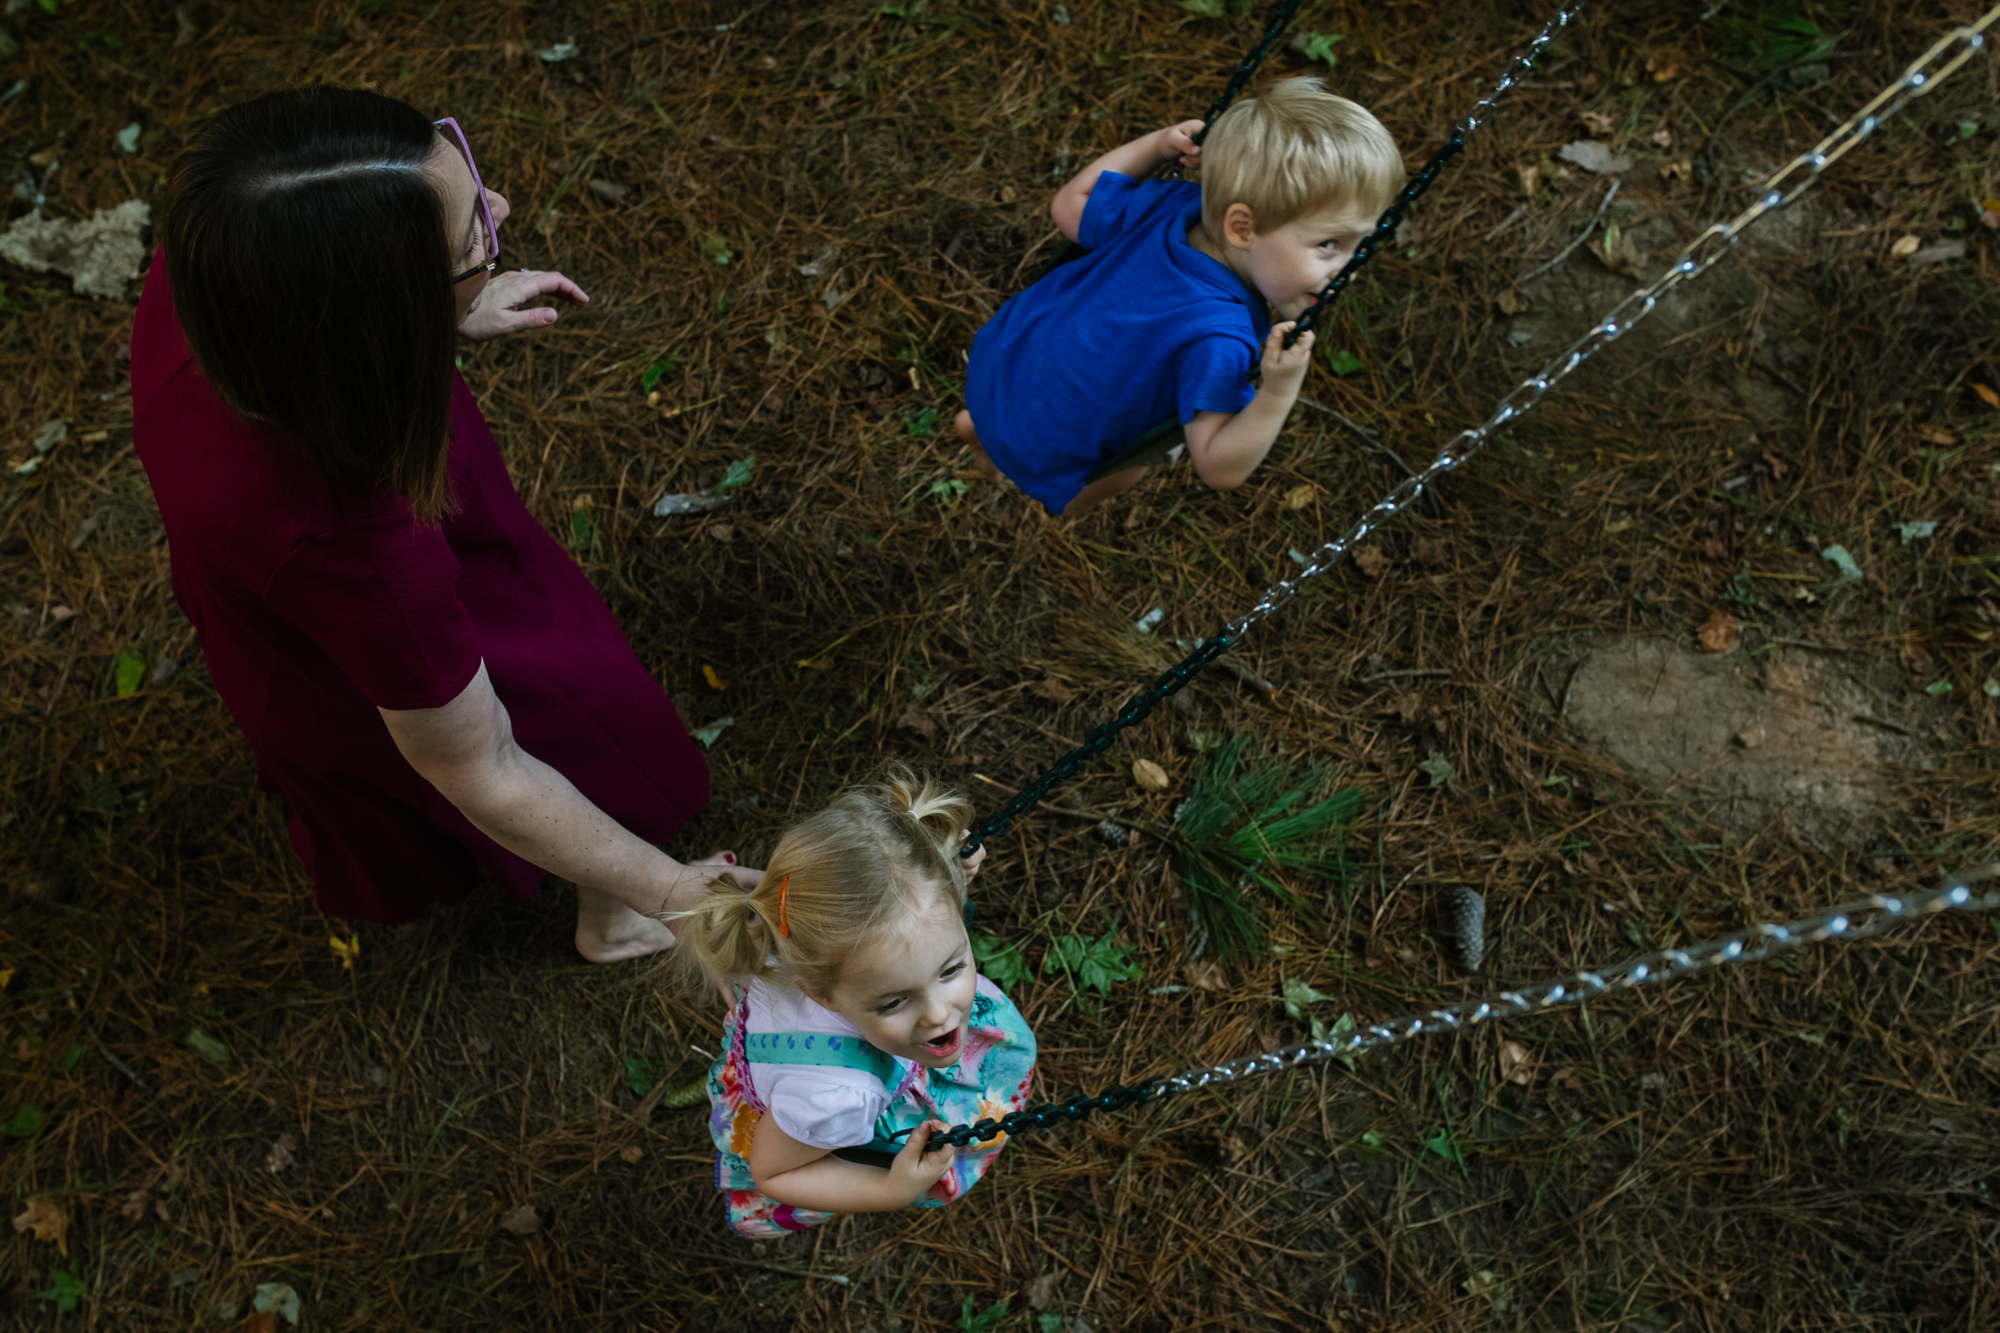 image from above of mom pushing two children on swings